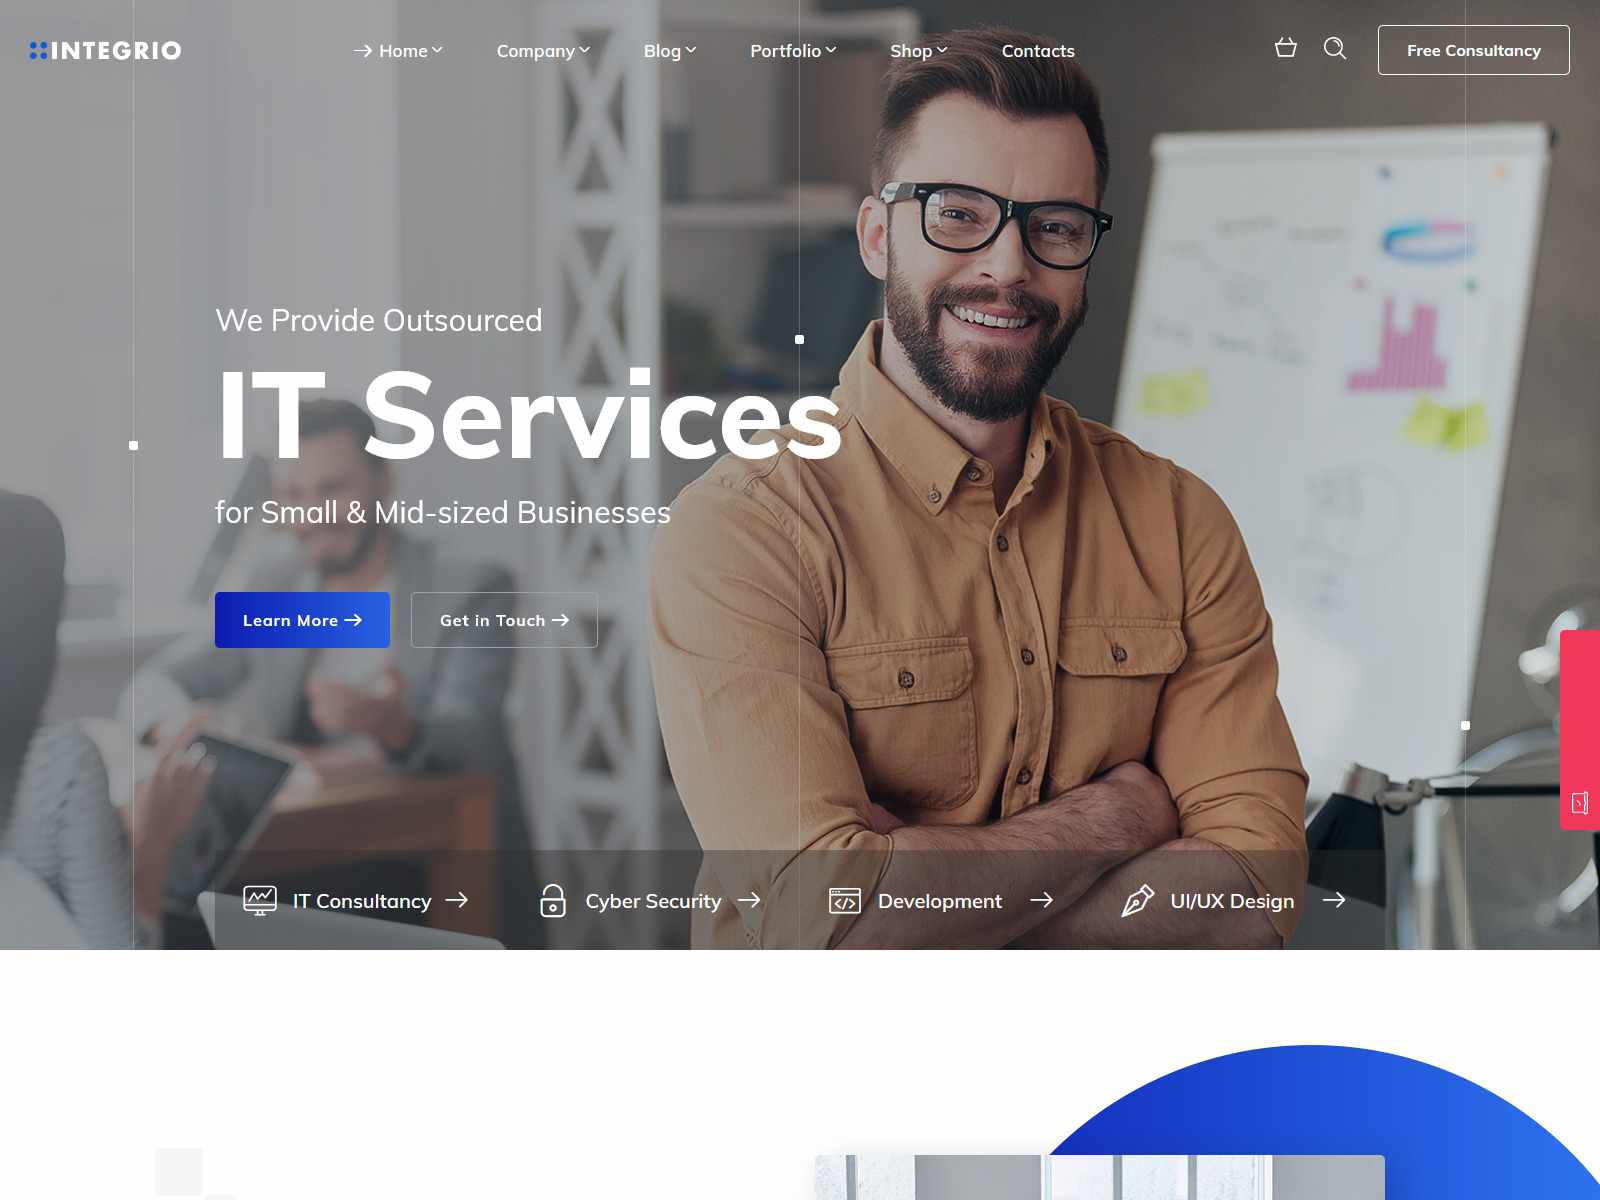 Integrio - IT Solutions and Services Company WordPress Theme